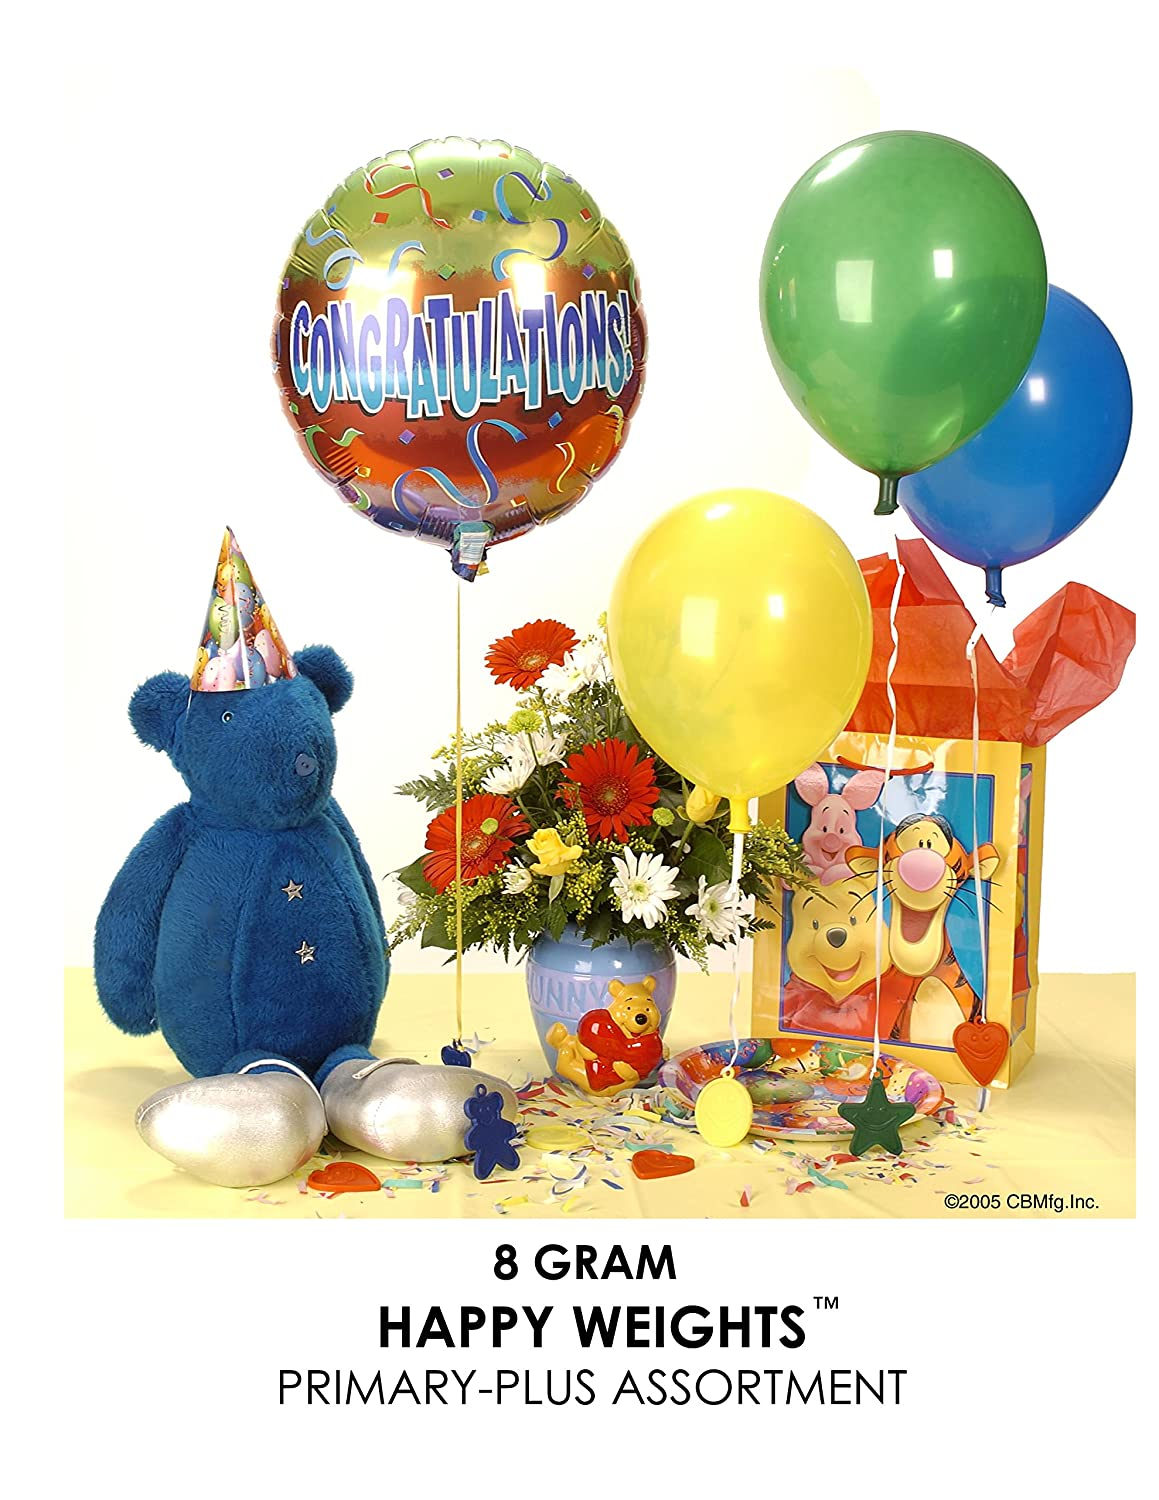 11215 Inc Creative Balloons Mfg Happy Weight 8 g Balloon Weights Primary-Plus Assortment 100 ct